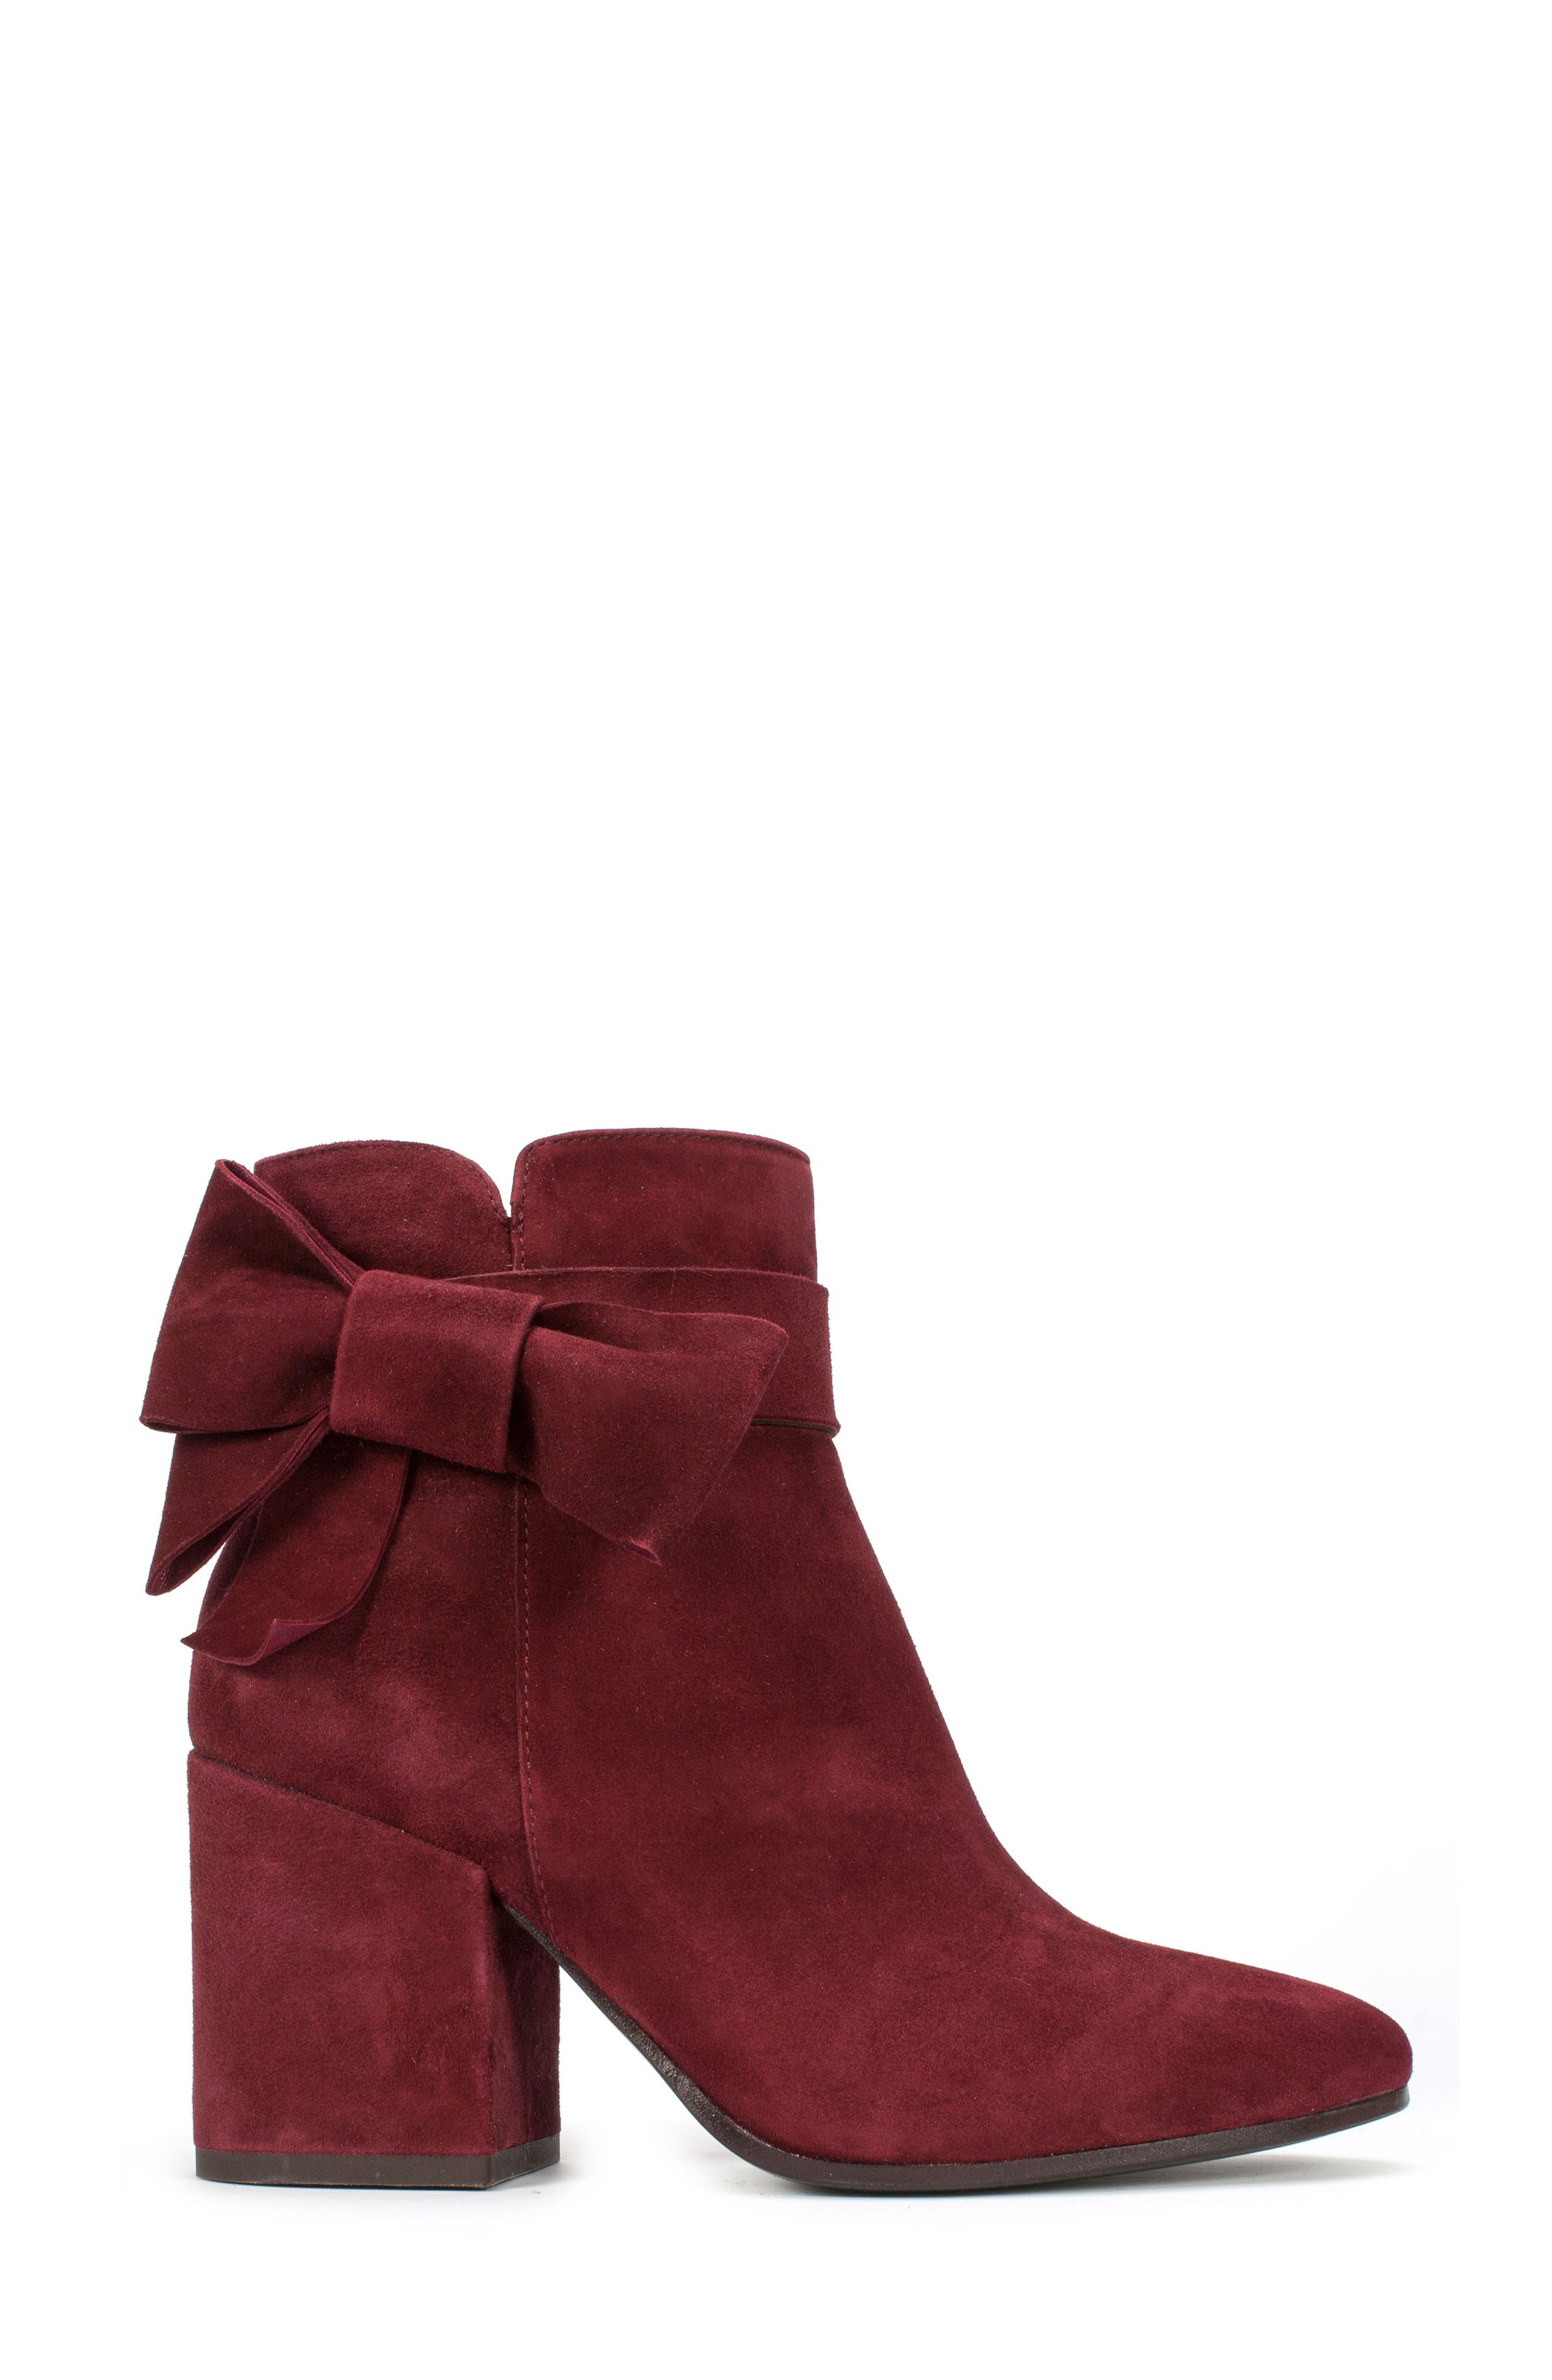 Stevie Bootie,                             Alternate thumbnail 3, color,                             Burgundy Suede